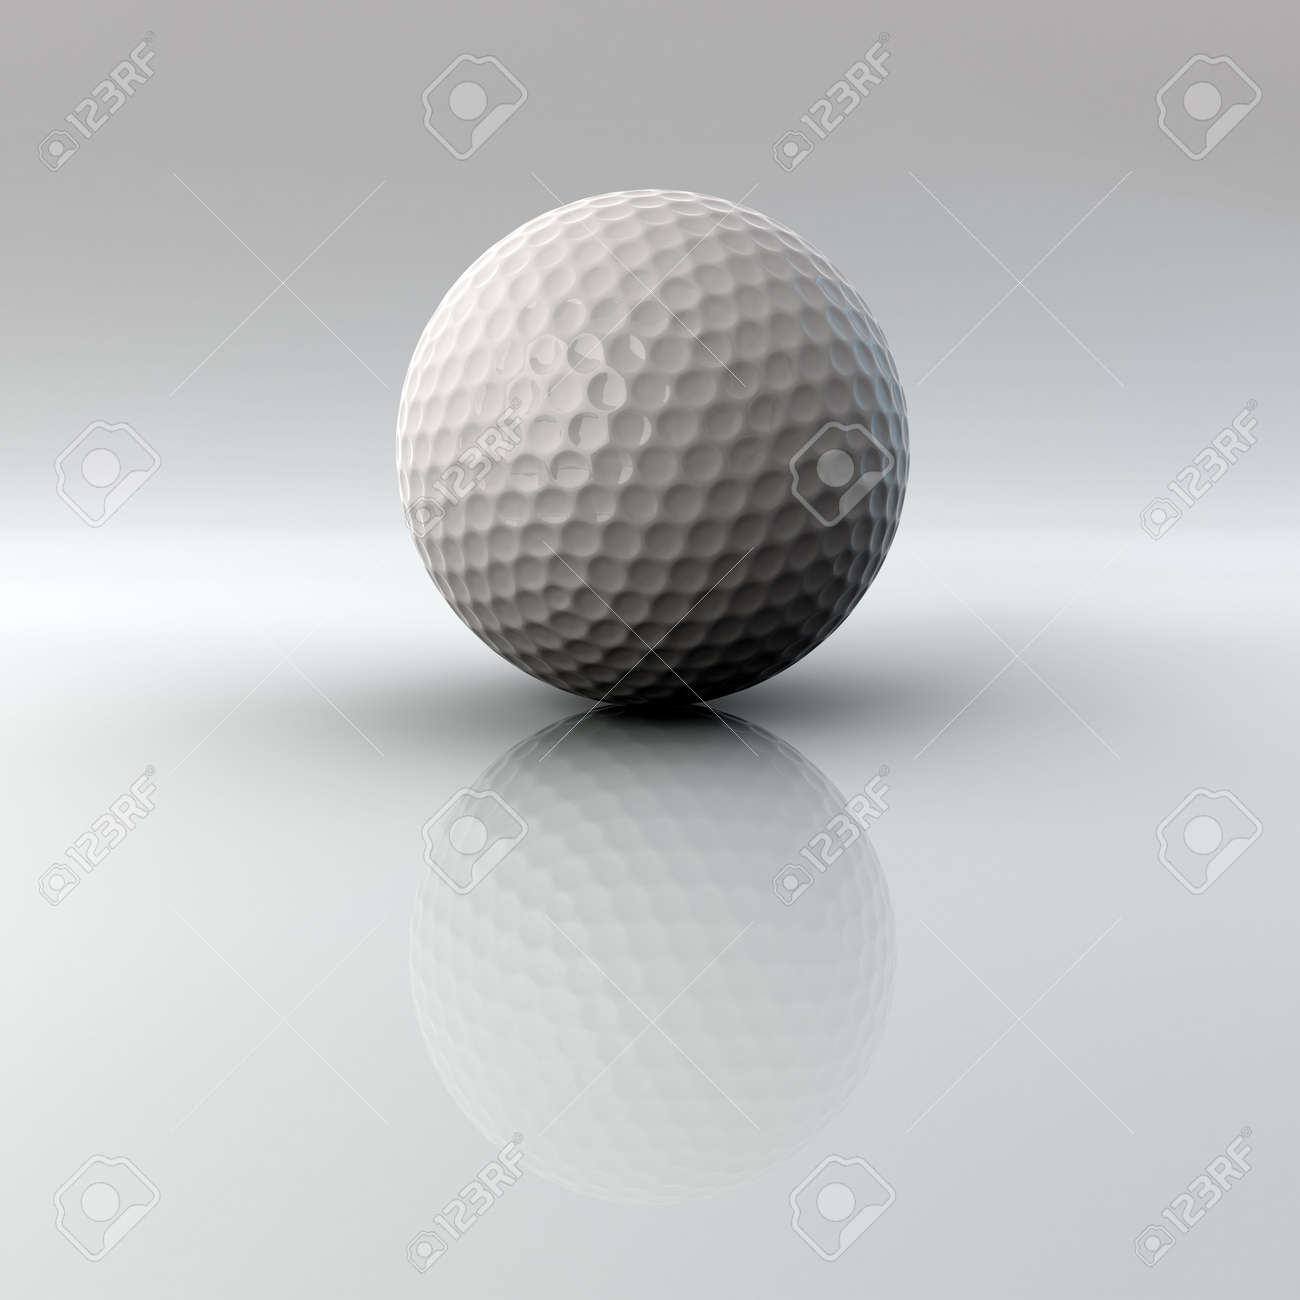 golf ball closeup on bright surface with reflection very high